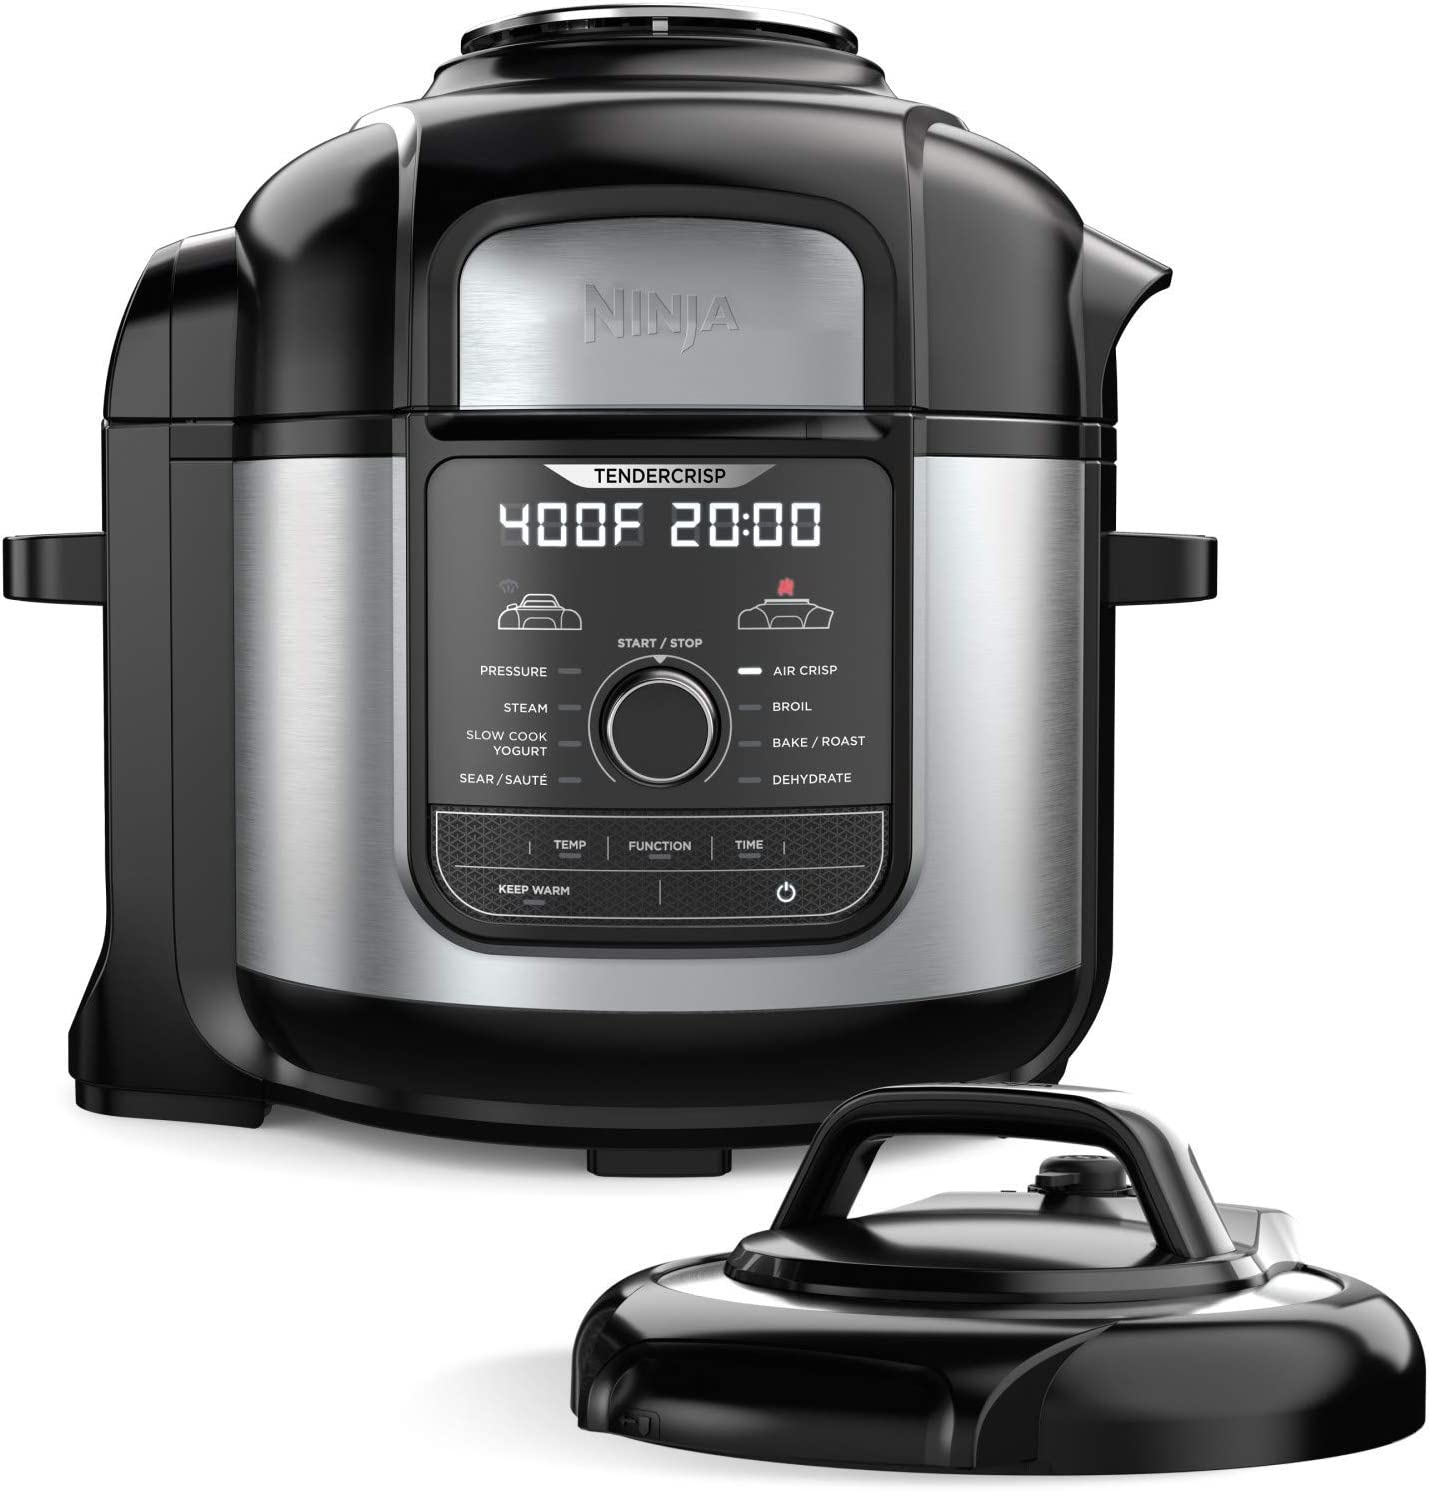 Ninja FD401 Foodi 8-qt. 9-in-1 Deluxe XL Cooker & Air Fryer-Stainless Steel Pressure Cooker, 8-Quart, (Renewed)